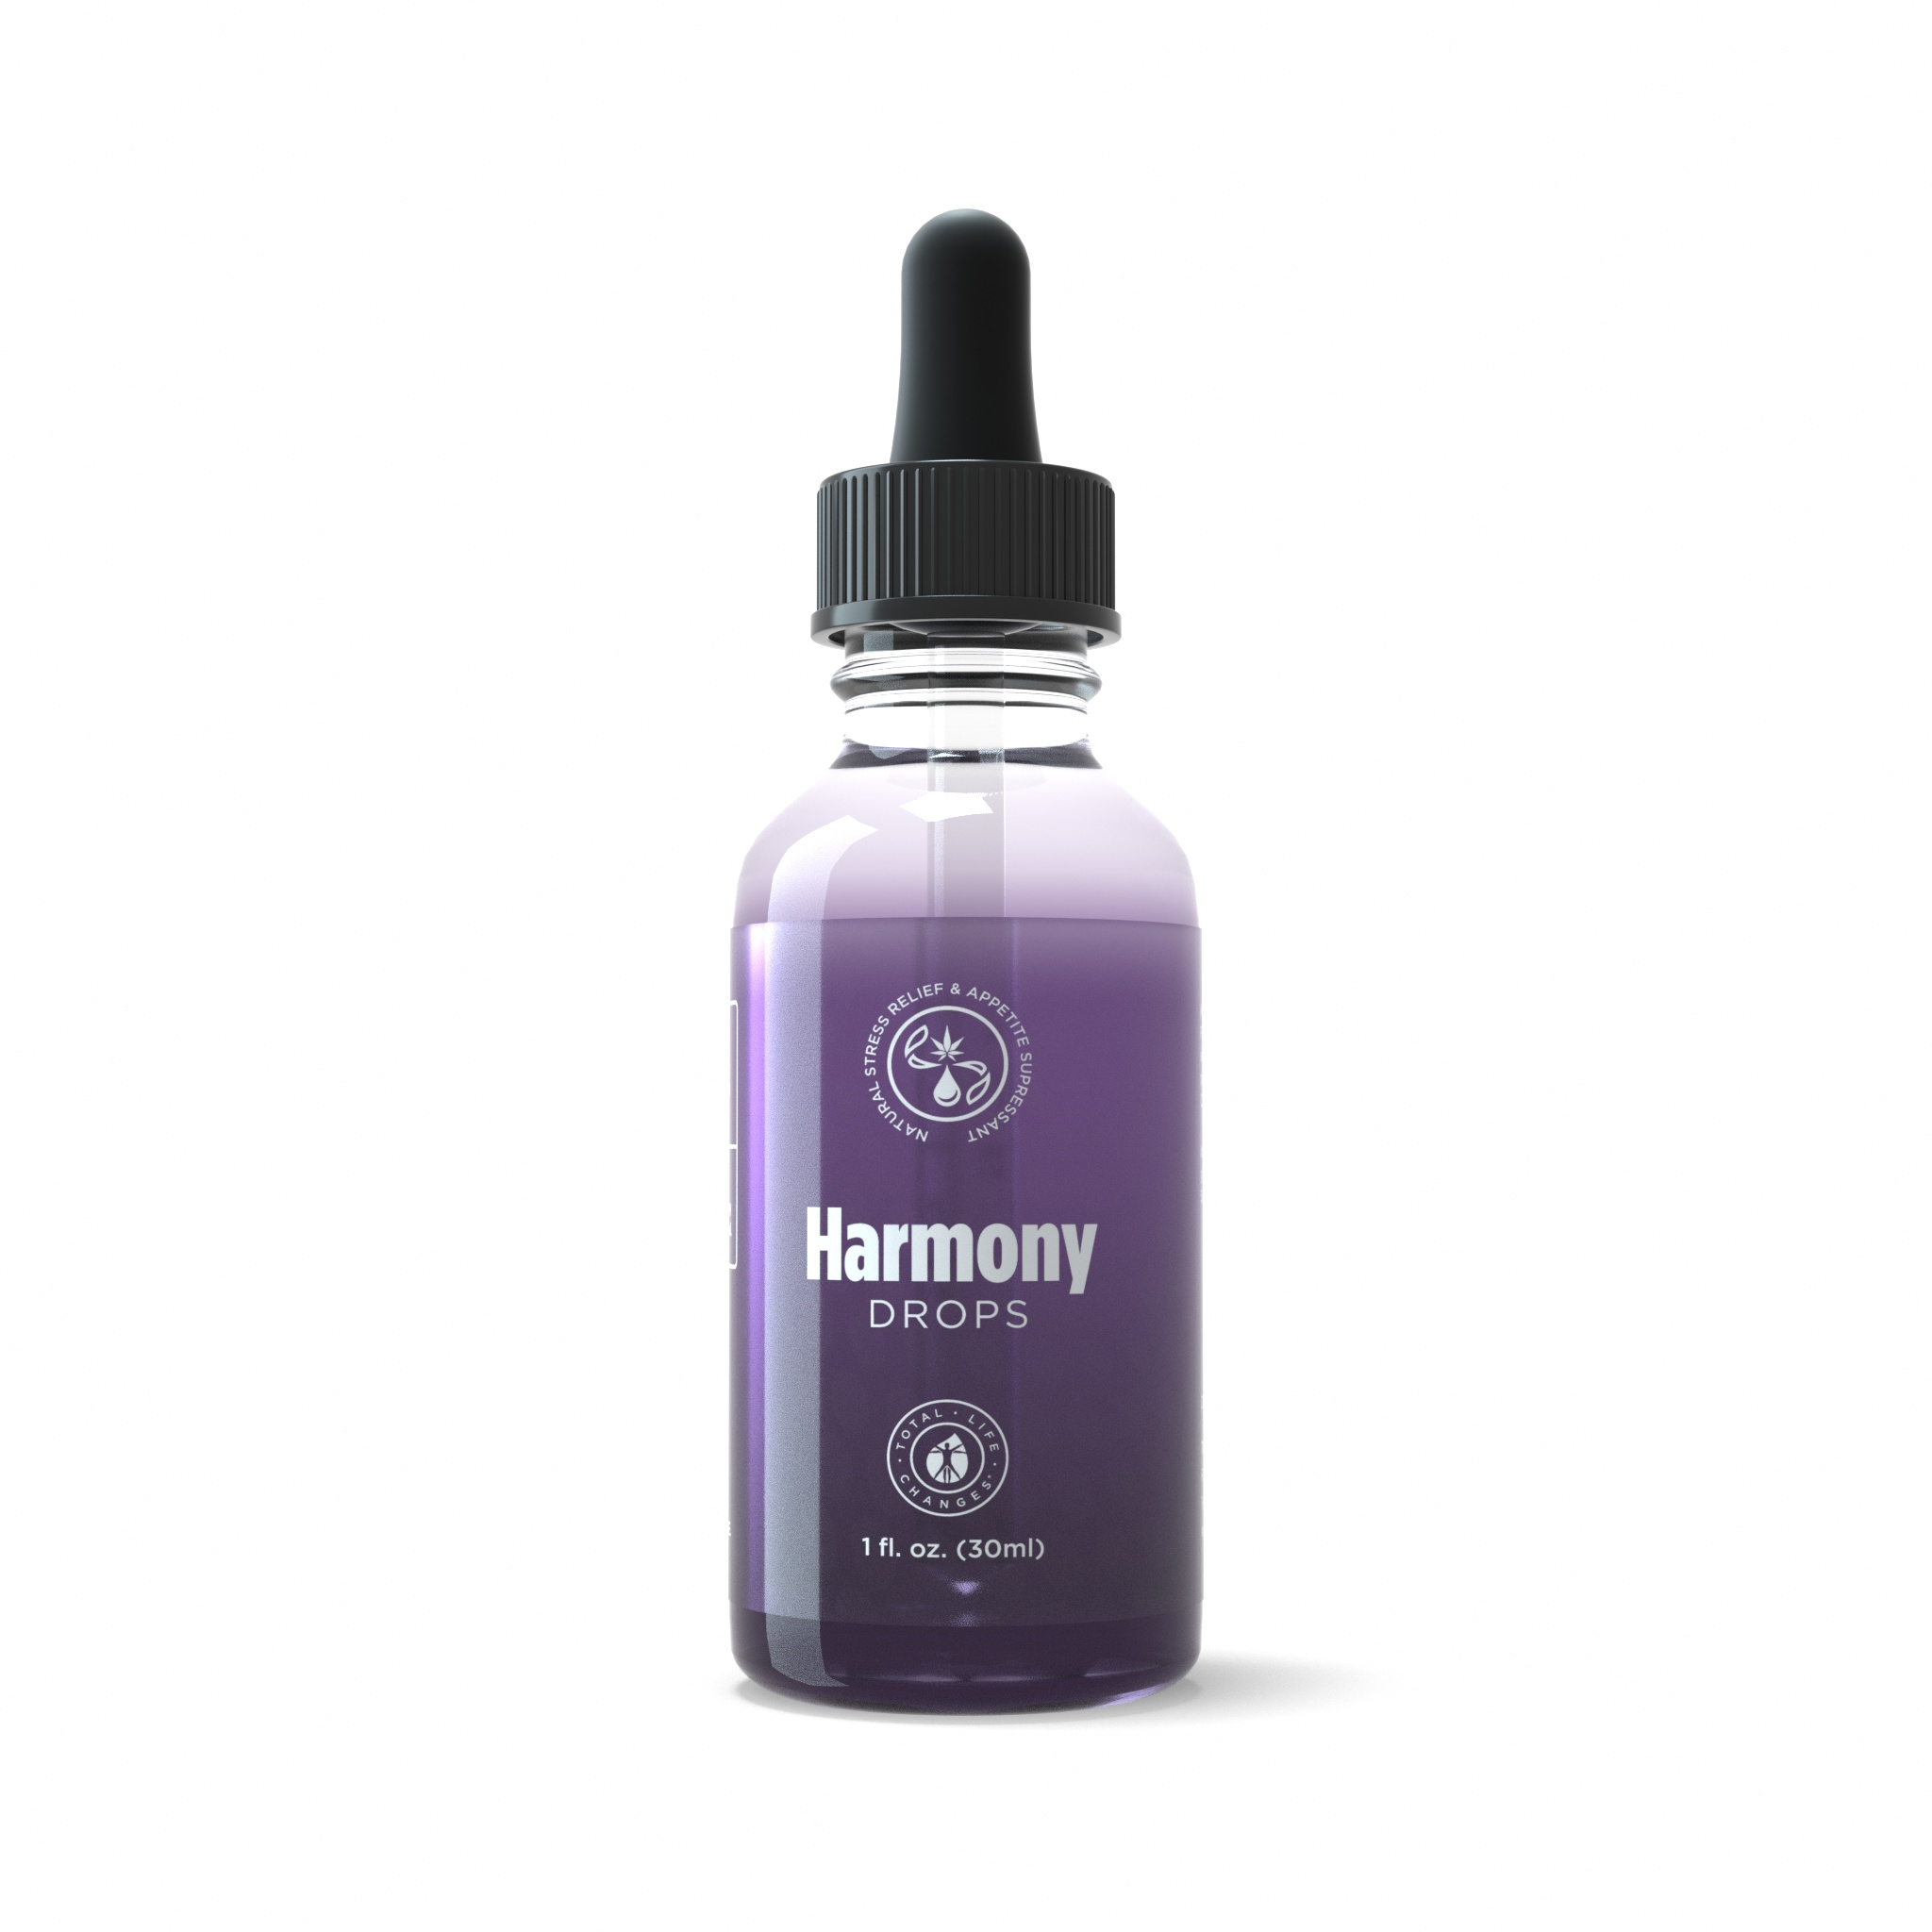 Harmony Drops - $59.95 USD